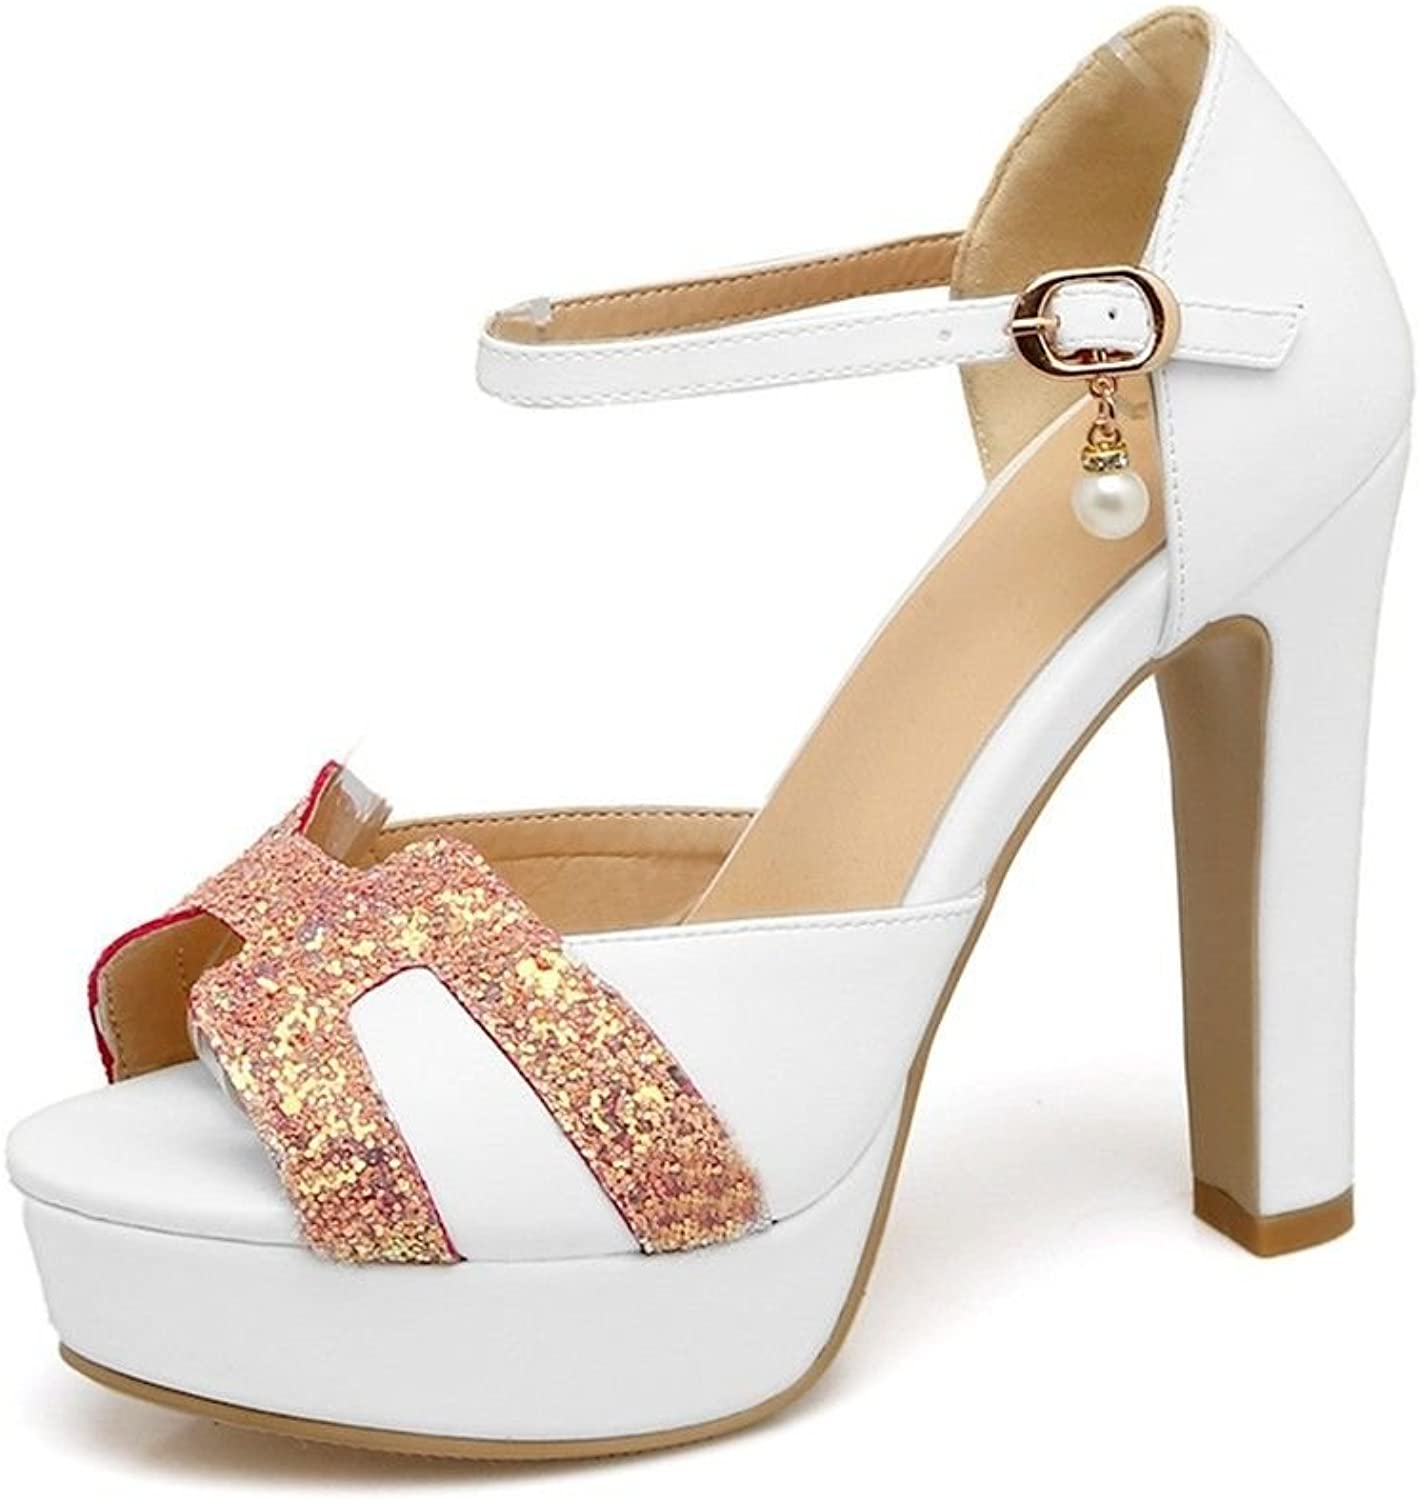 In The Summer, high Heels and Pearl Clasp Large Code Nightclub Sandals